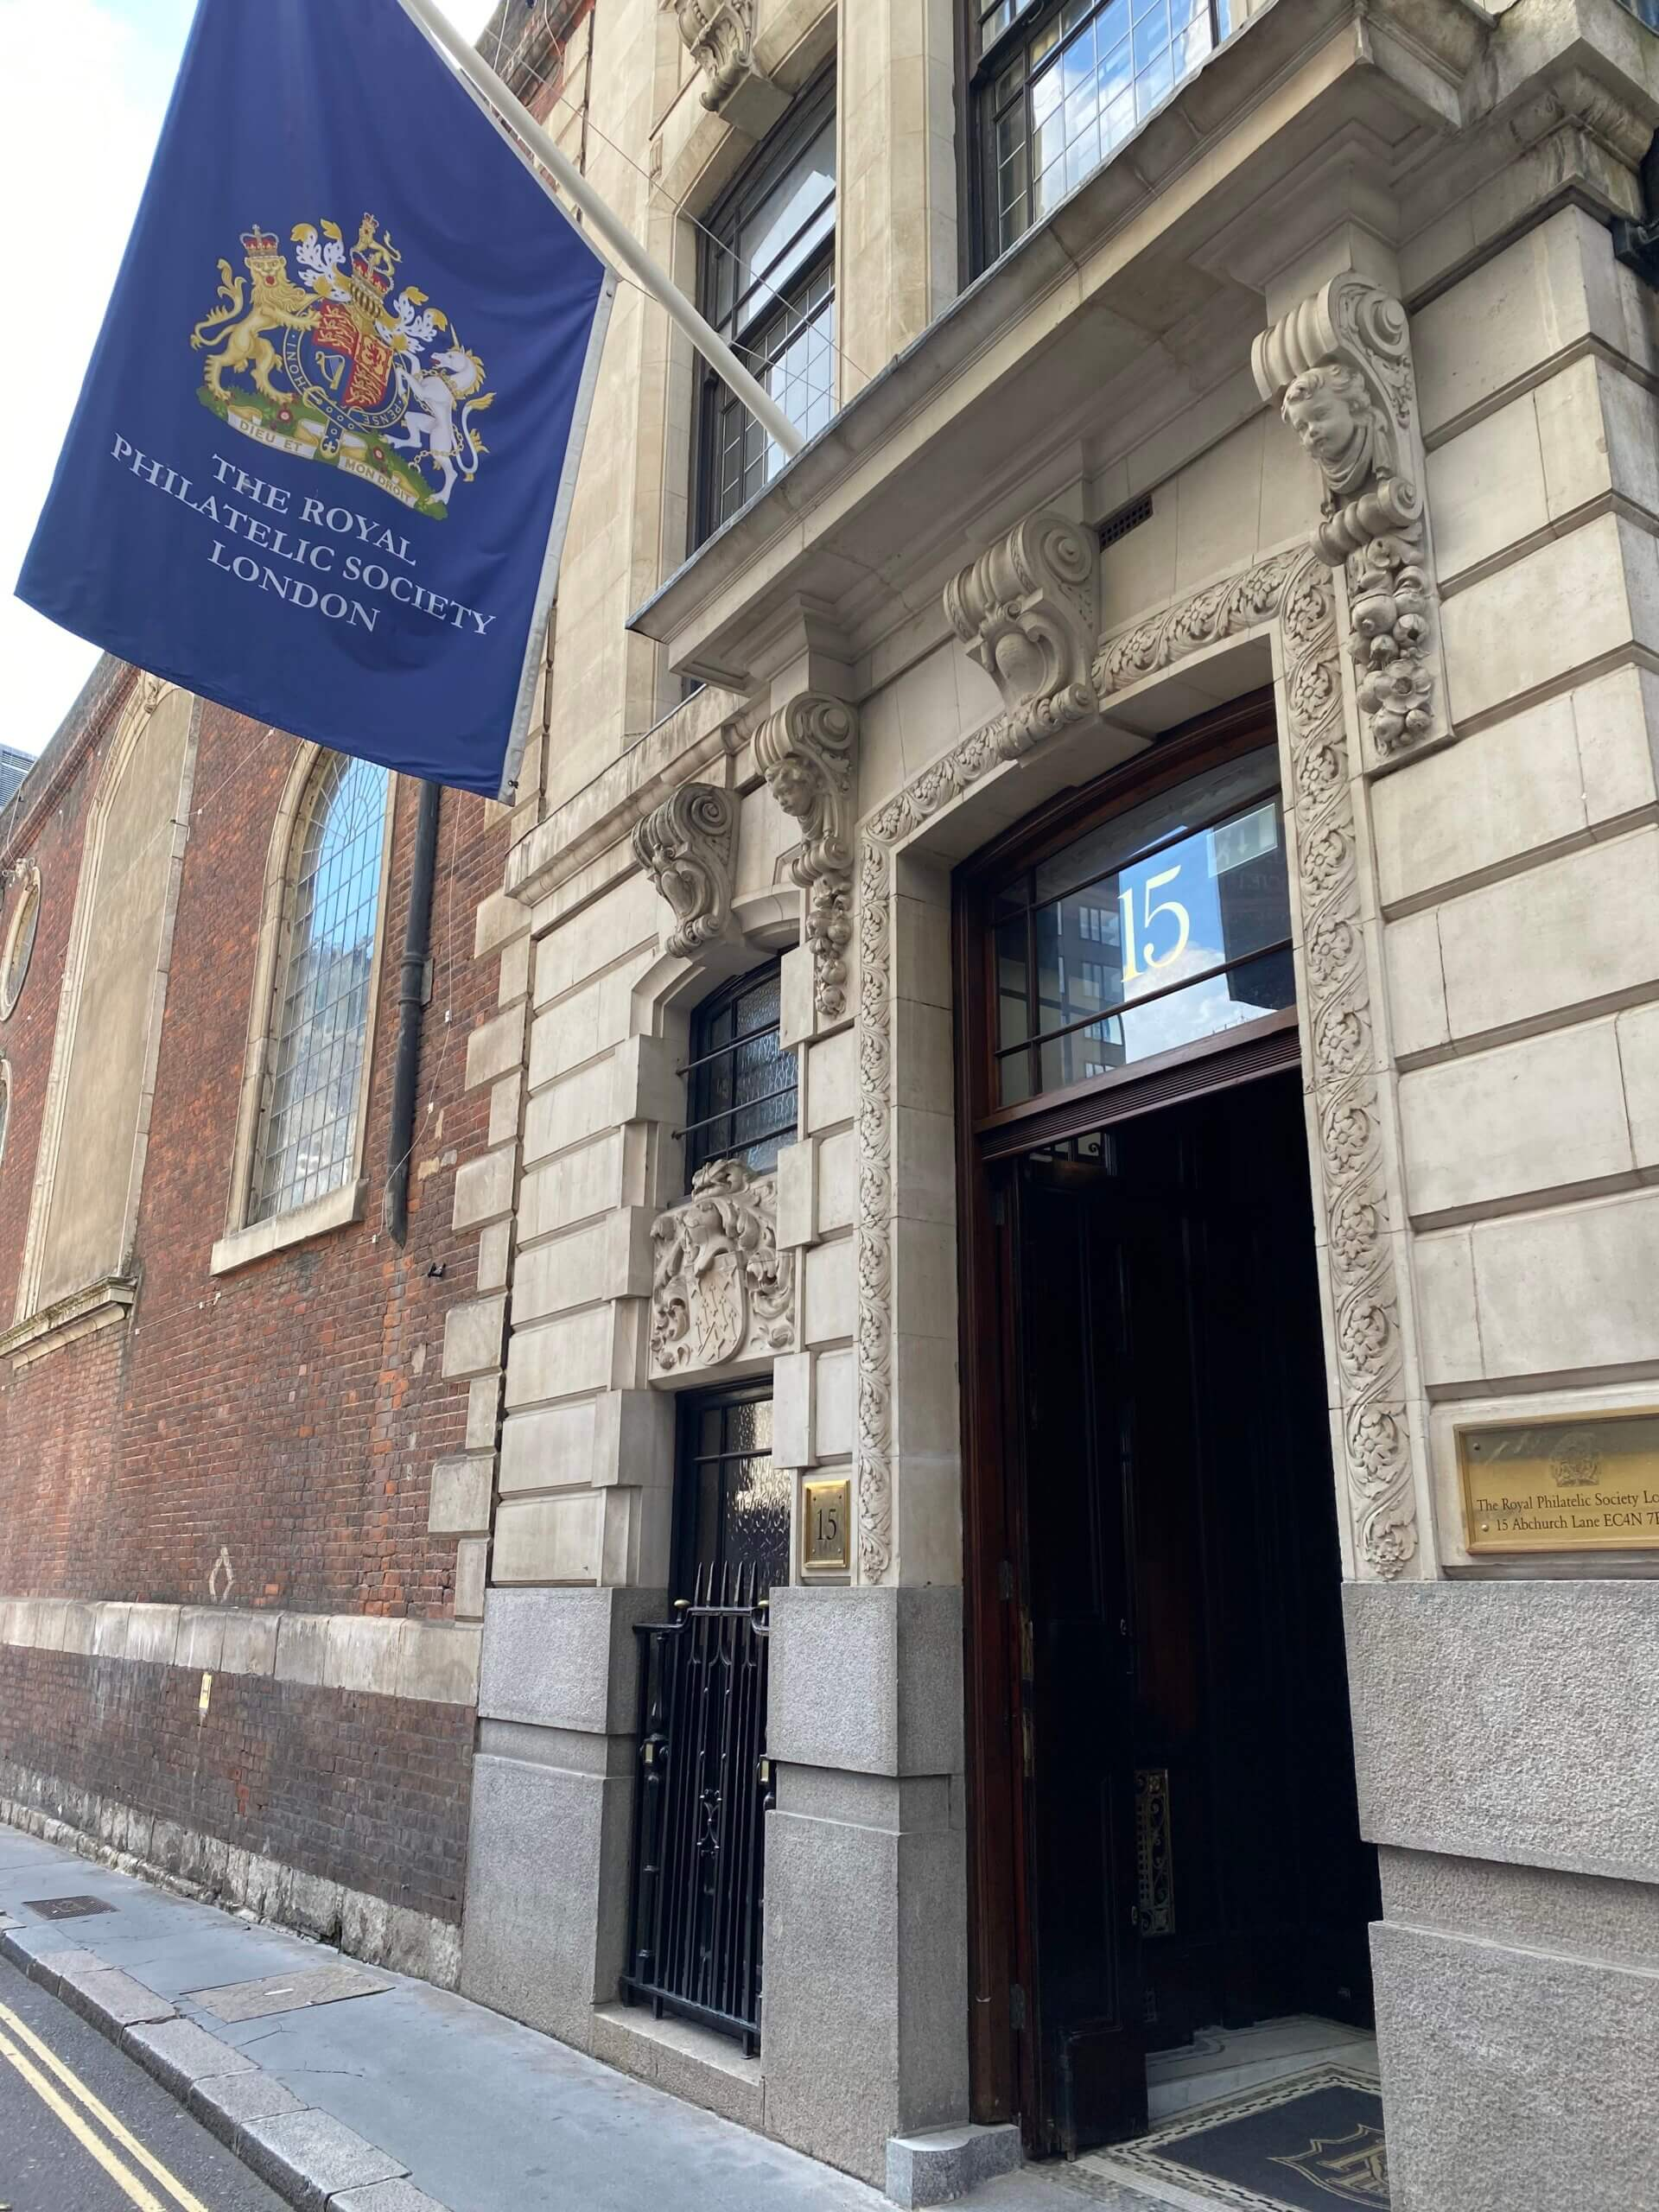 A trip to the Royal Philatelic Society London showcases their new home